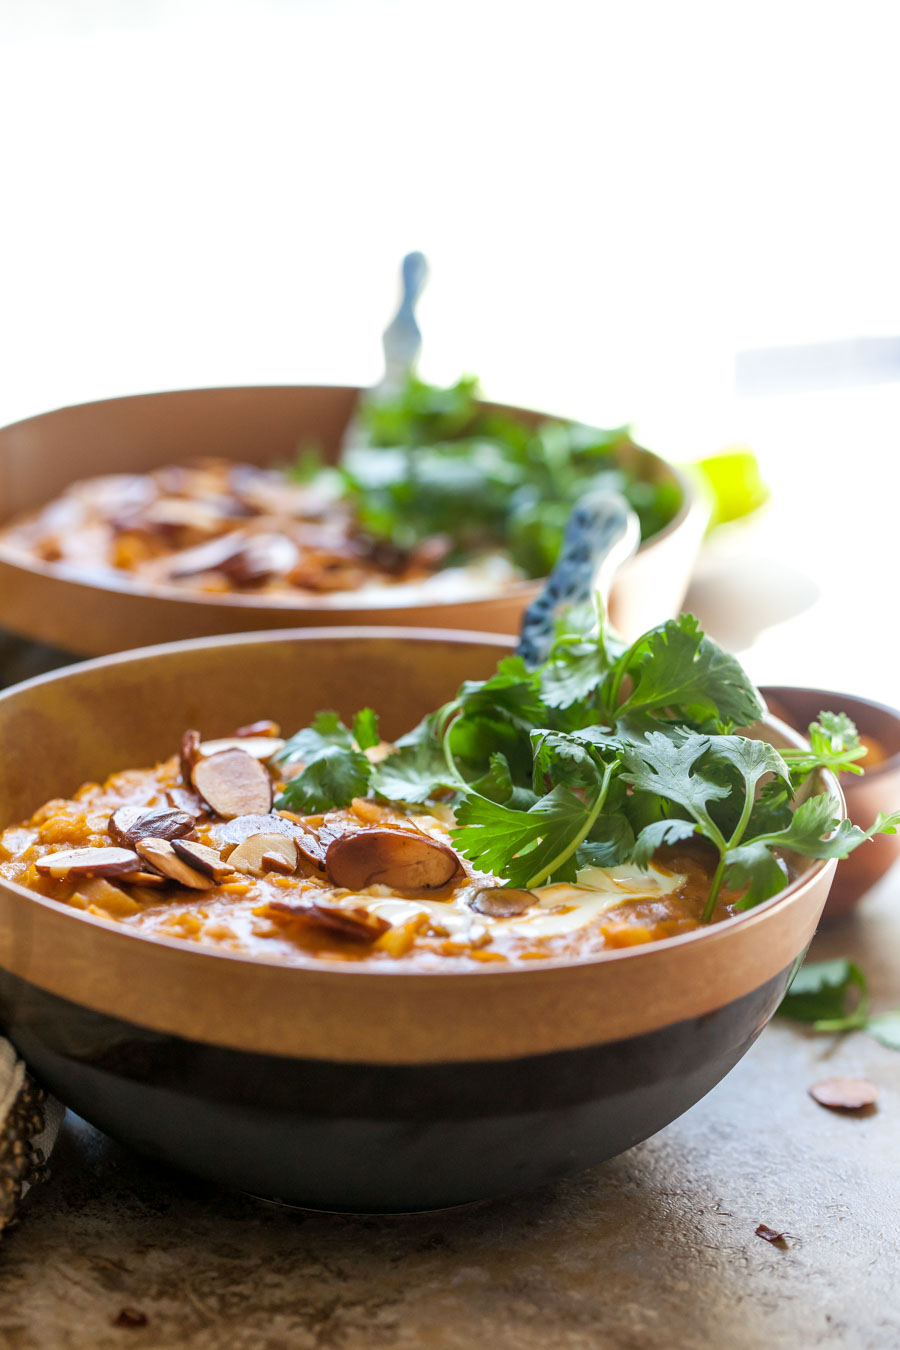 Curried Lentil Soup with Yogurt and Cilantro made in one pot